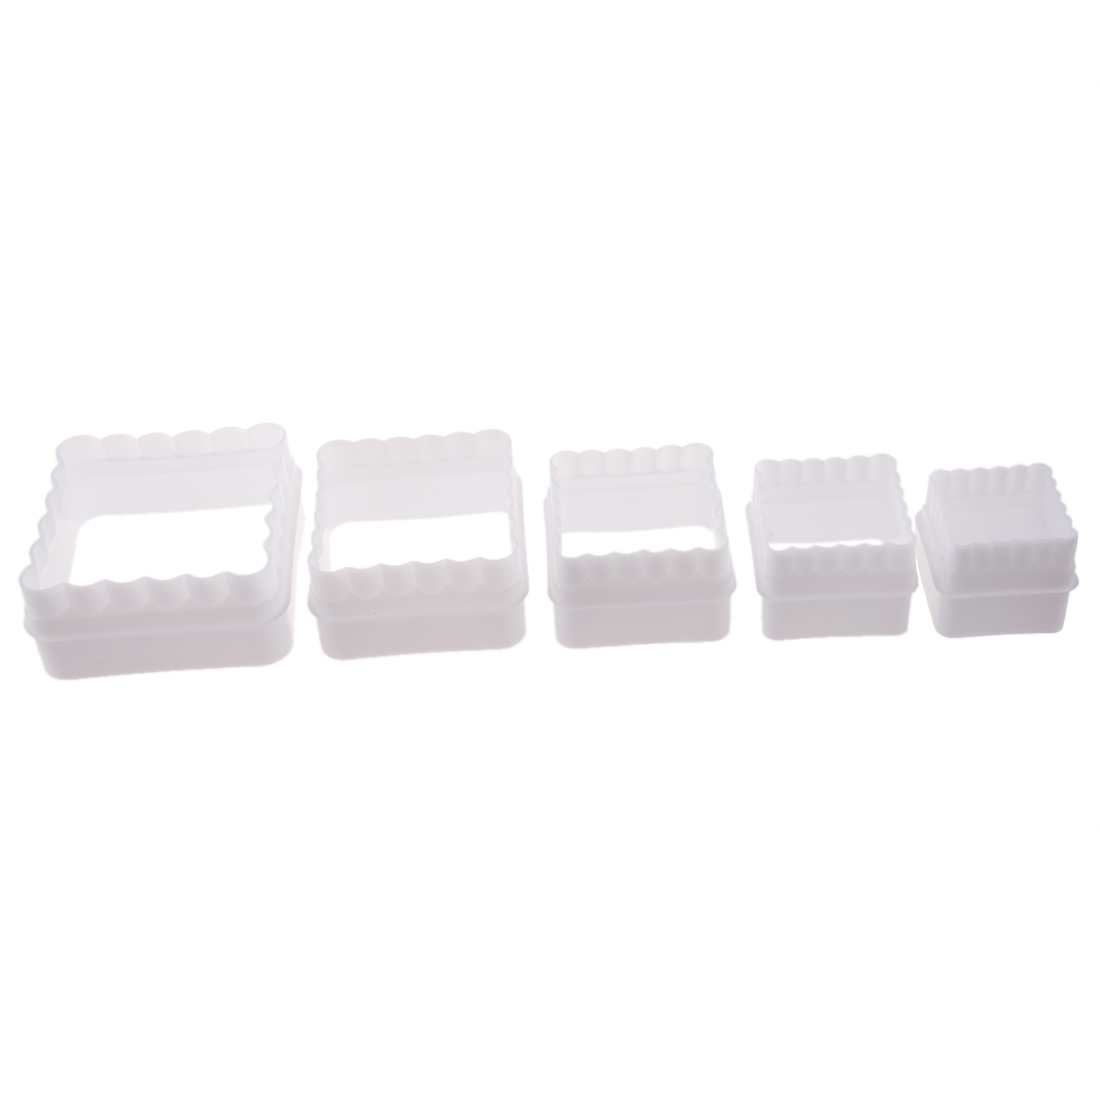 5 Pcs White Plastic Square mold of Biscuit Fondant Cake Pastry Pate Piece for Kitchen